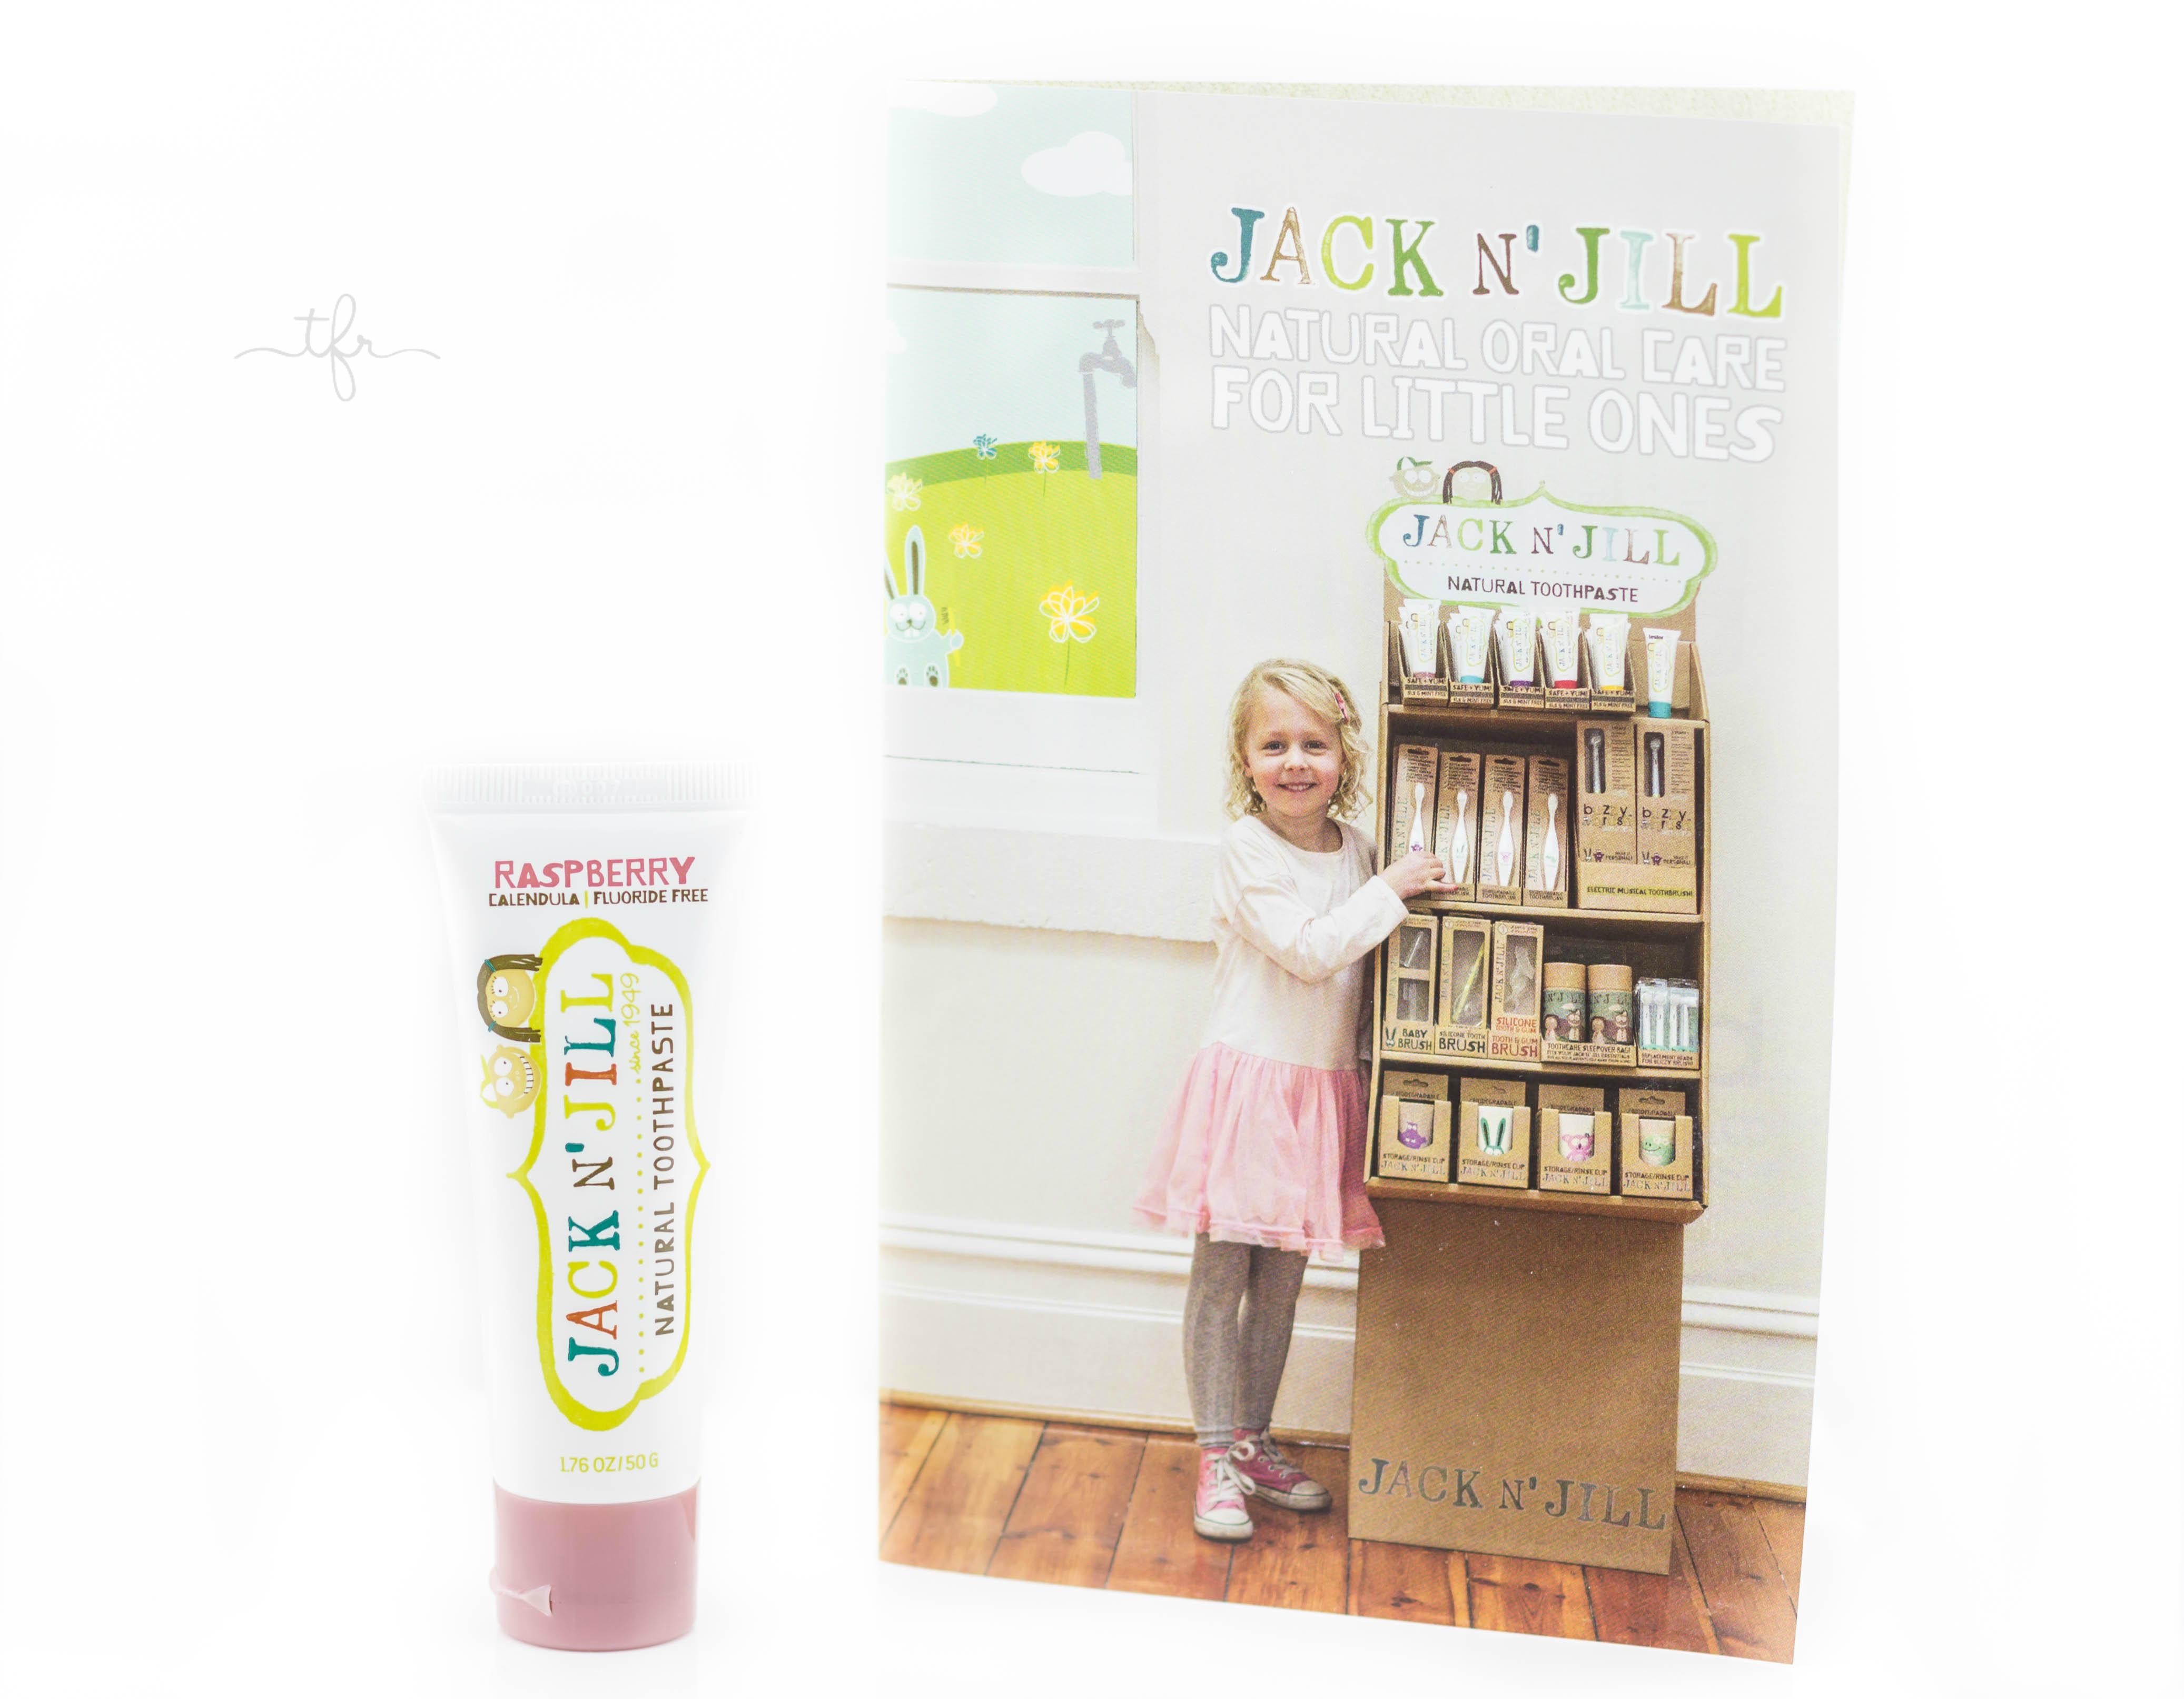 Jack N' Jill Natural Toothpaste in Raspberry 50g $6.99 - This toothpaste has the perfect amount of sweetness to give your mouth that refreshing feeling. It contains calendula is gluten free and is certified USDA organic. On top of that, it is fluoride free, sugar free, color free and SLS free with no preservatives and no allergens. The packaging is BPA free and recyclable. They offer many different flavors including strawberry, blueberry, banana and black currant. They also sell a flavor free variety. I grow calendula in my own garden, and I was excited to see it being used as an ingredient! It has beneficial anti-inflammatory properties and can even treat sore throats. Along with toothpaste, they offer toothbrushes, rinse cups, kits and even adorable tooth keepers. Children can place their recently lost tooth in the tooth keeper, slide it under their pillow and await a visit from the tooth fairy! They are absolutely adorable, so be sure to check them out.